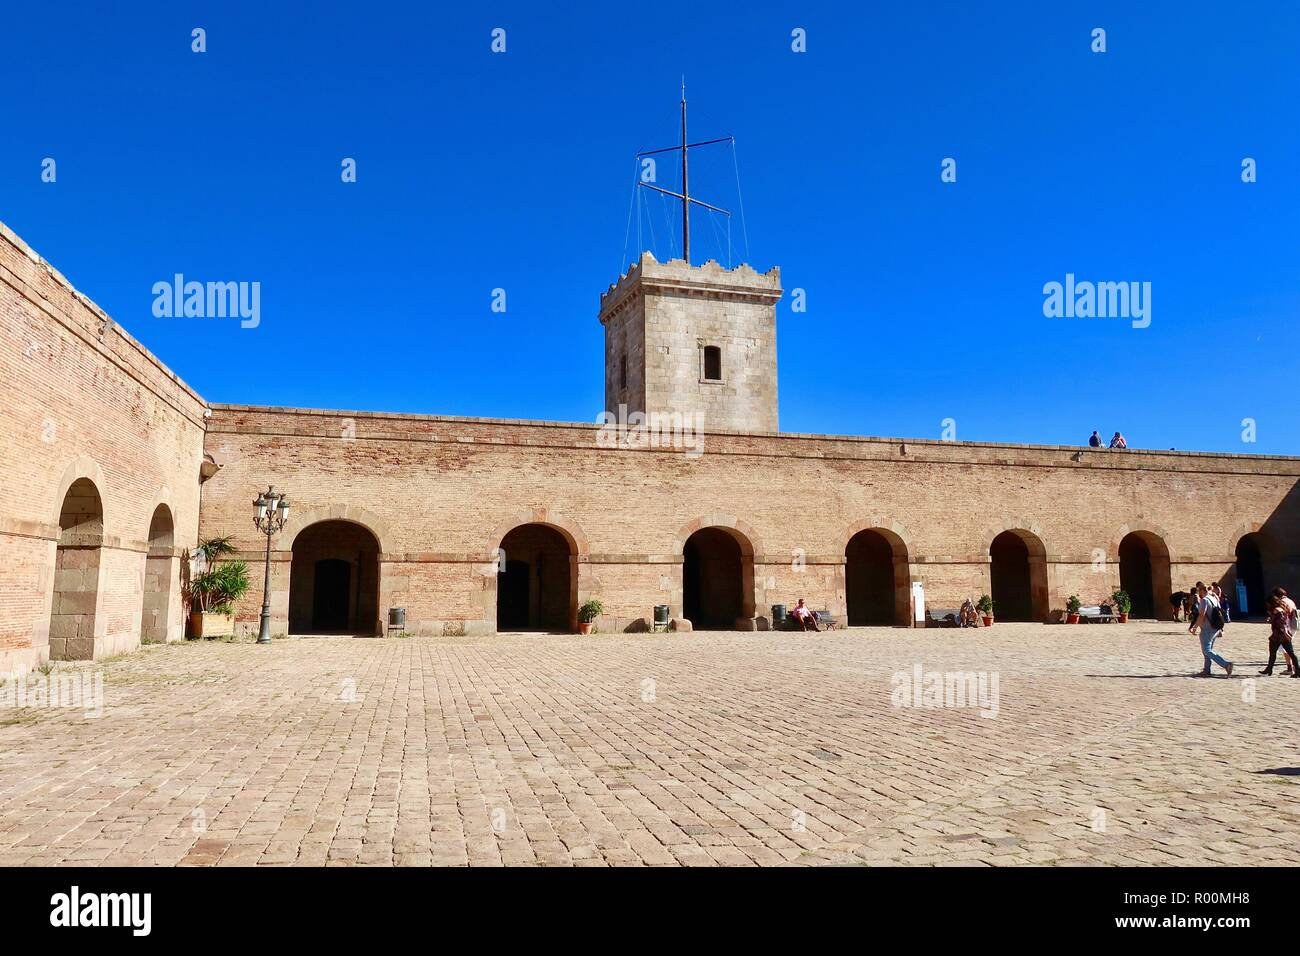 Barcelona, Spain, October 2018. People enjoying Castell / Castle Mont Juic on a hot bright afternoon. - Stock Image